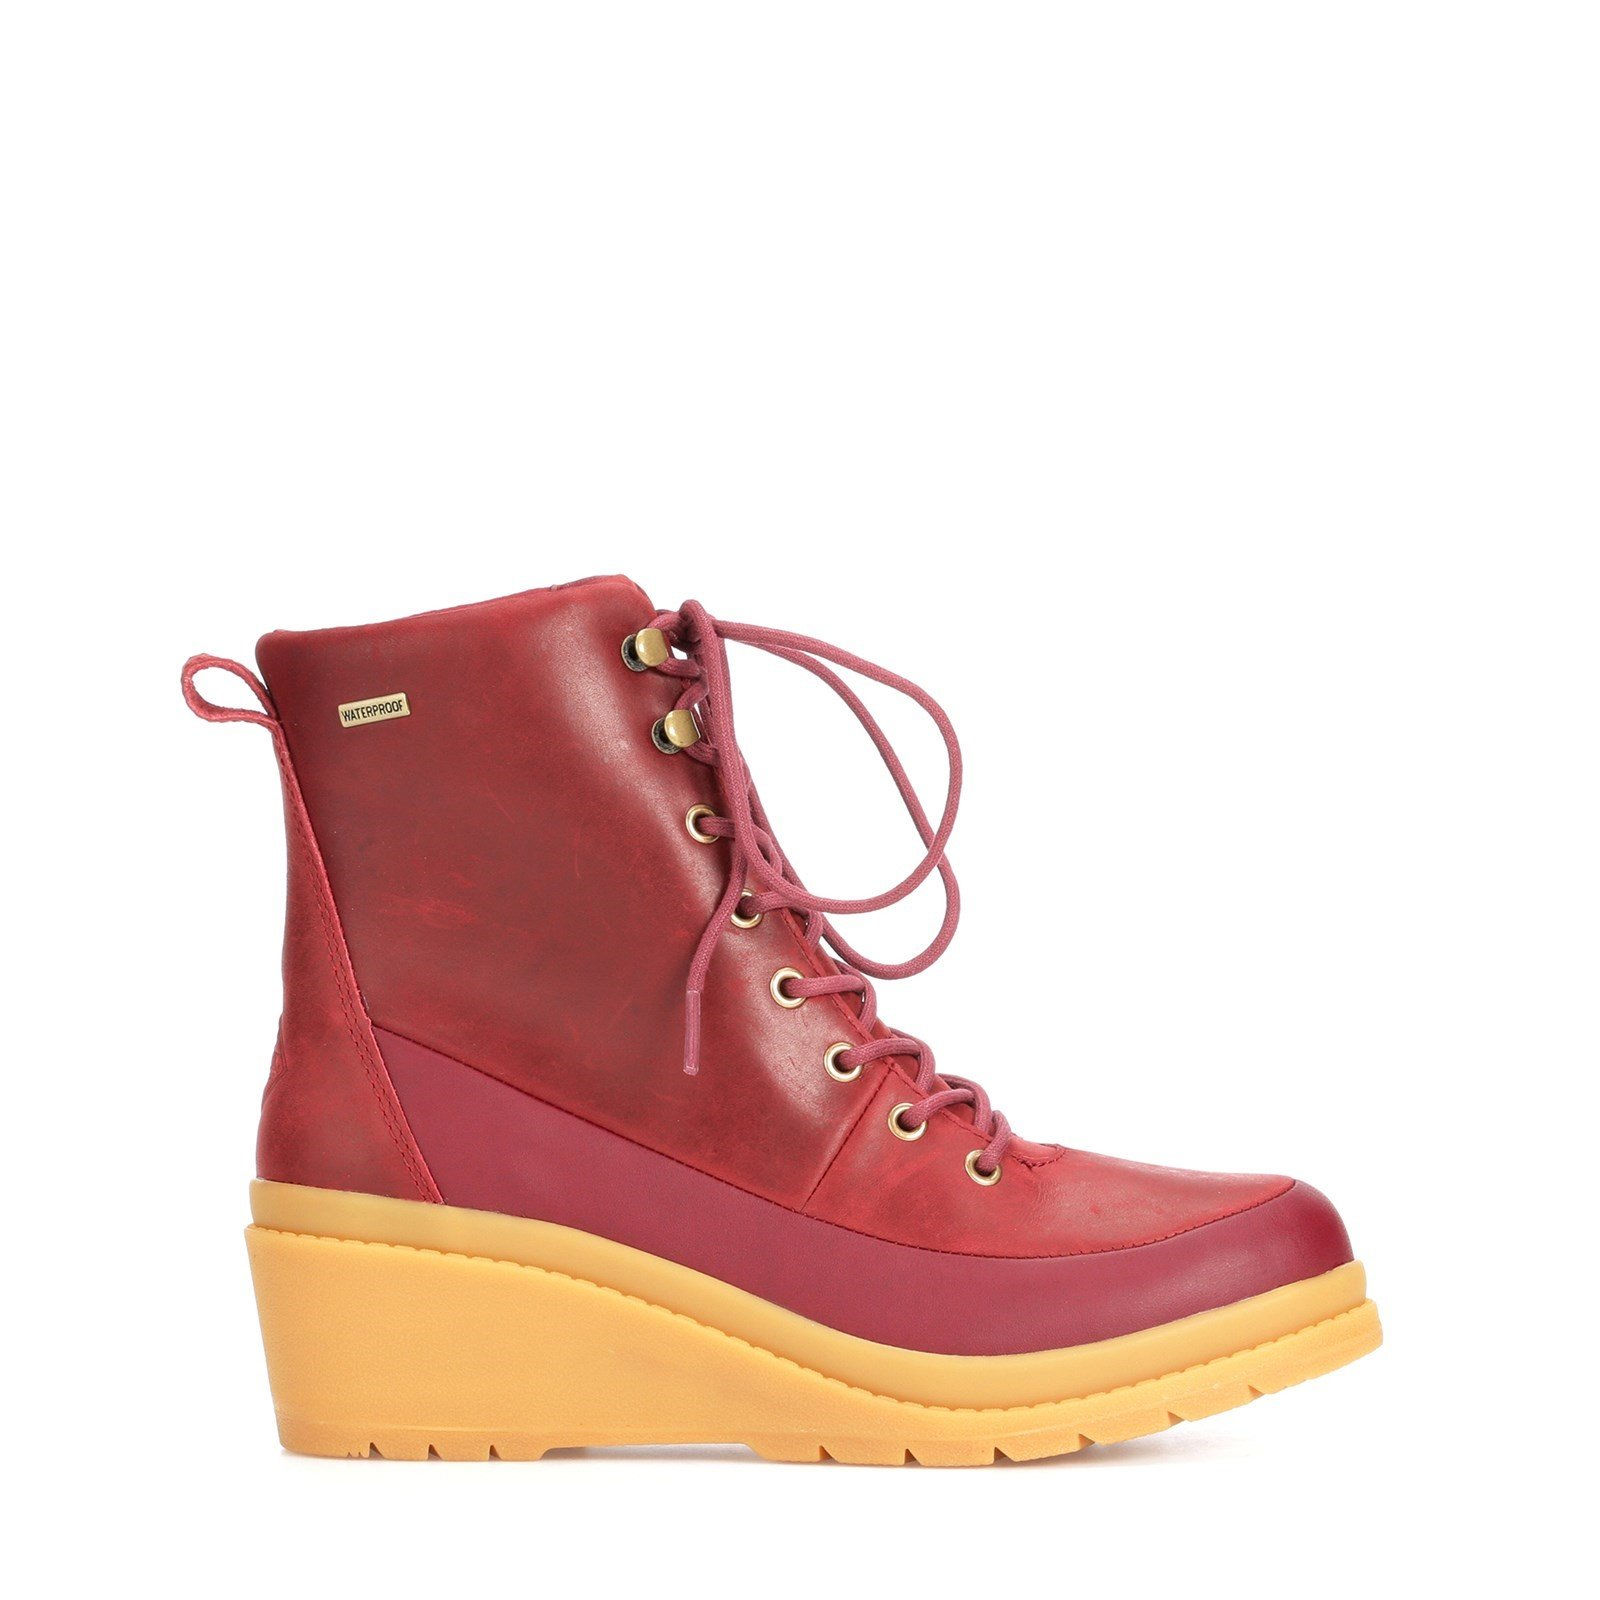 Muck Boots Women's Liberty Leather Ankle Boots Various Colours 31813 - Cordovan 6